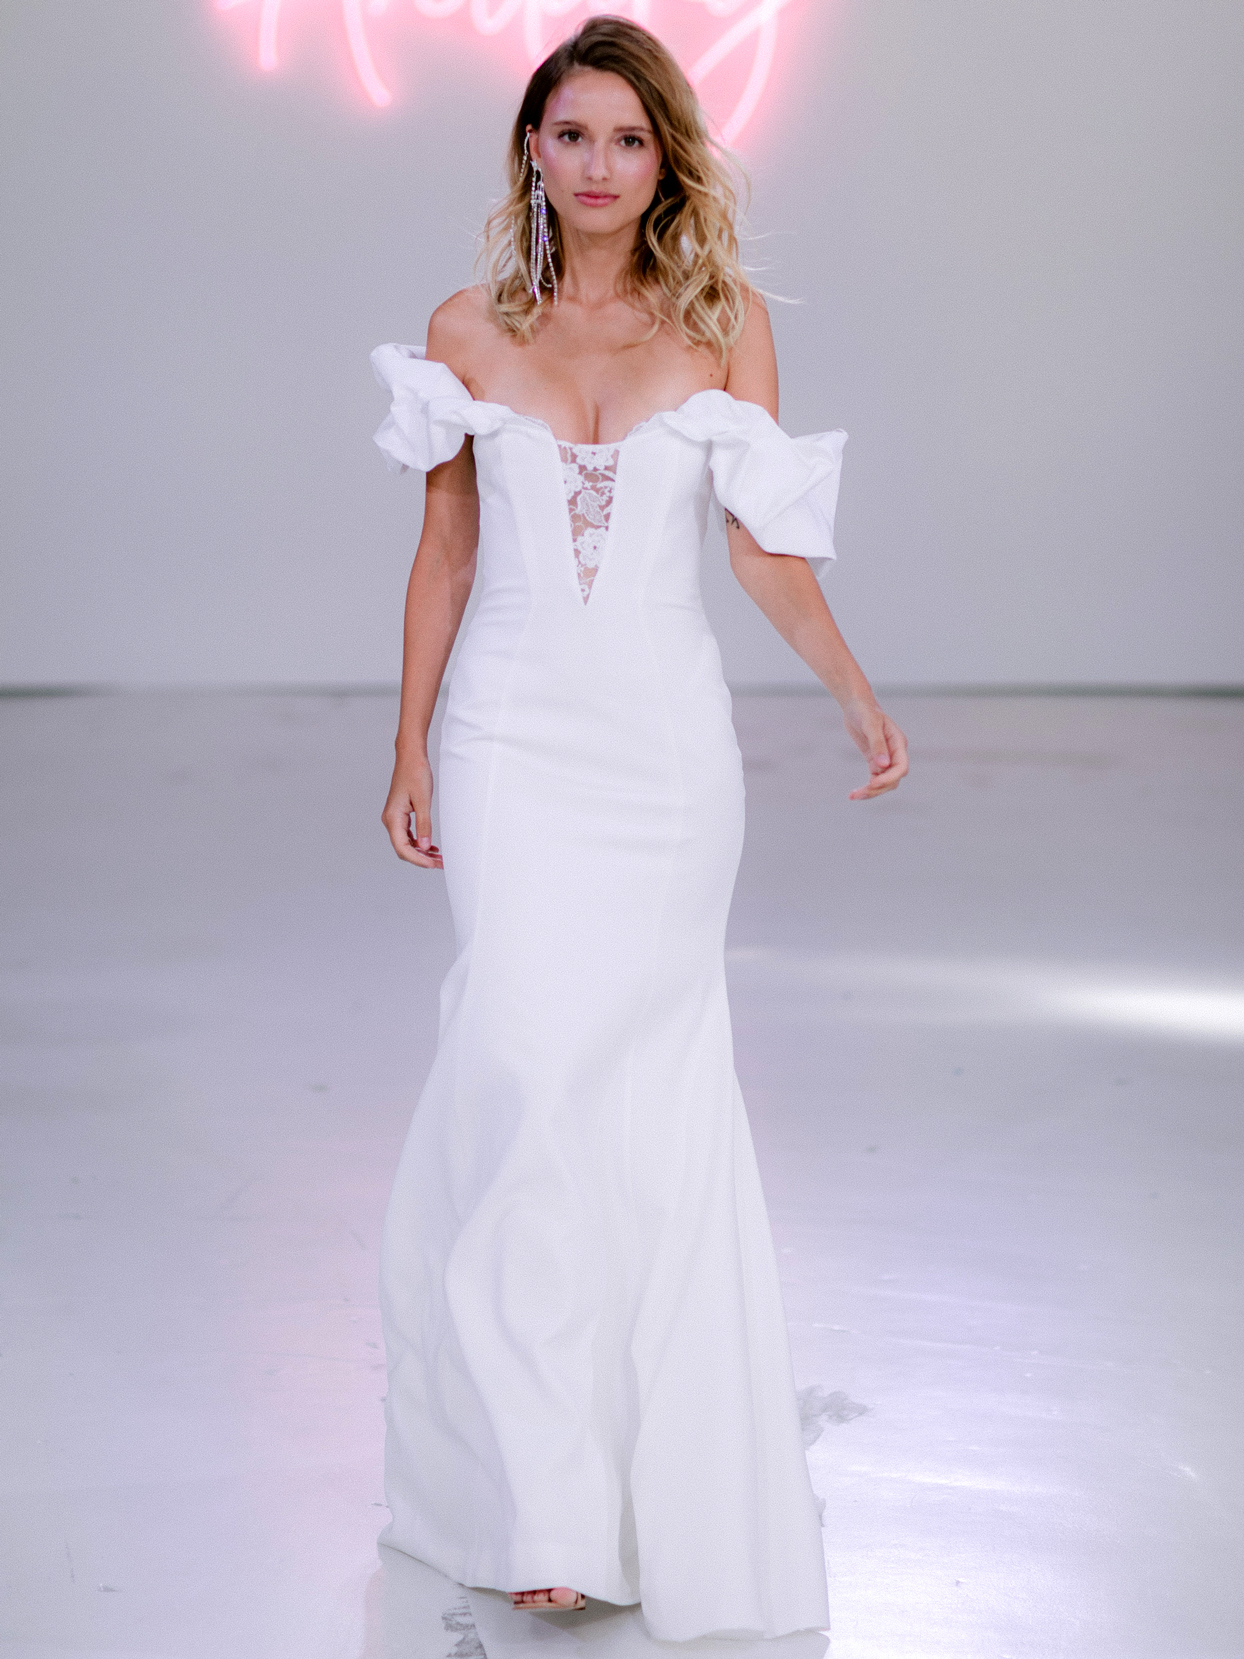 Rime Arodaky X The Mews Bridal off-the-shoulder lace plunging v-neck wedding dress fall 2020